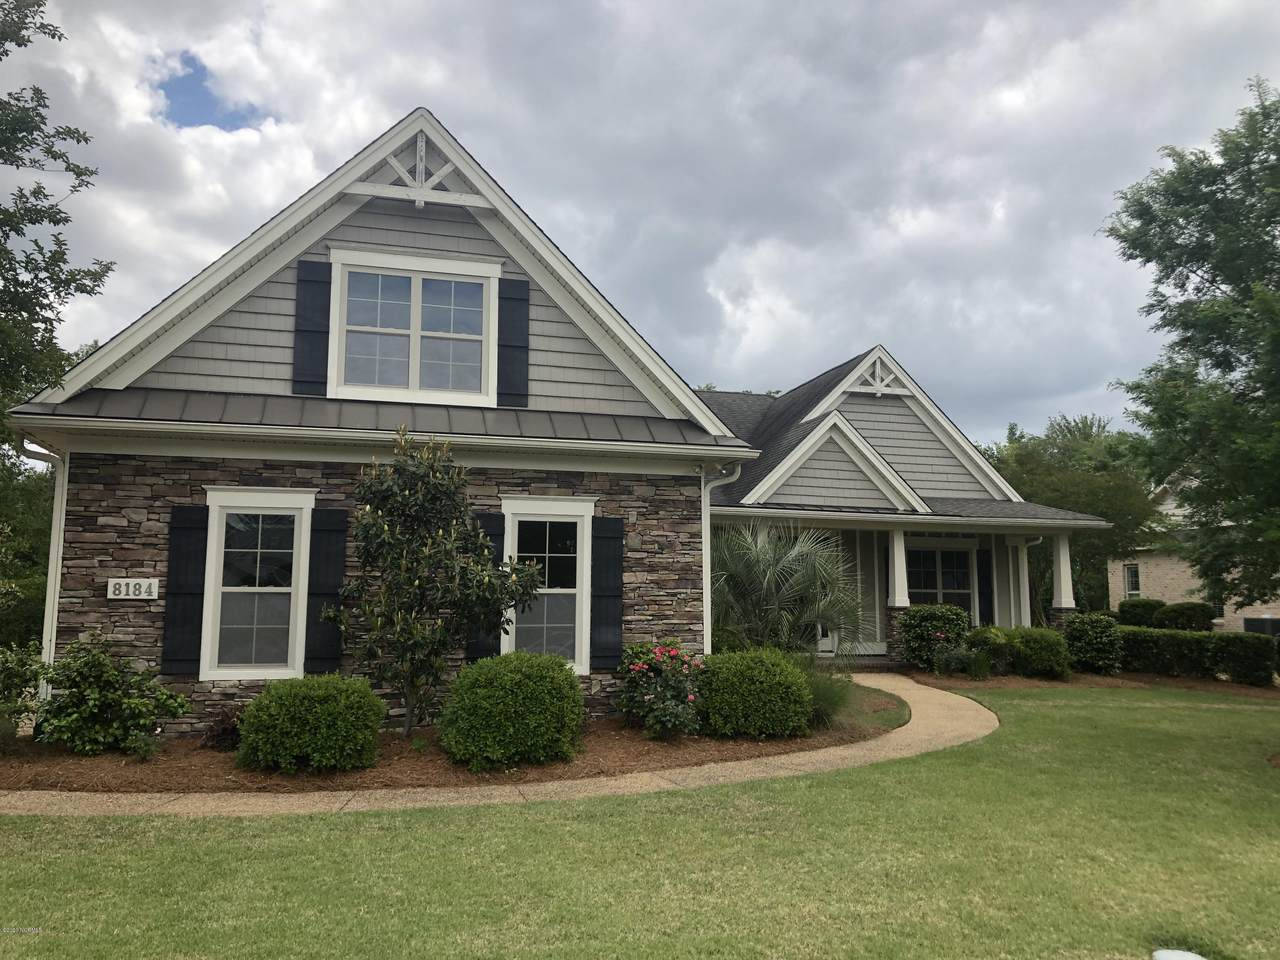 8184 Compass Pointe East Wynd - Photo 1